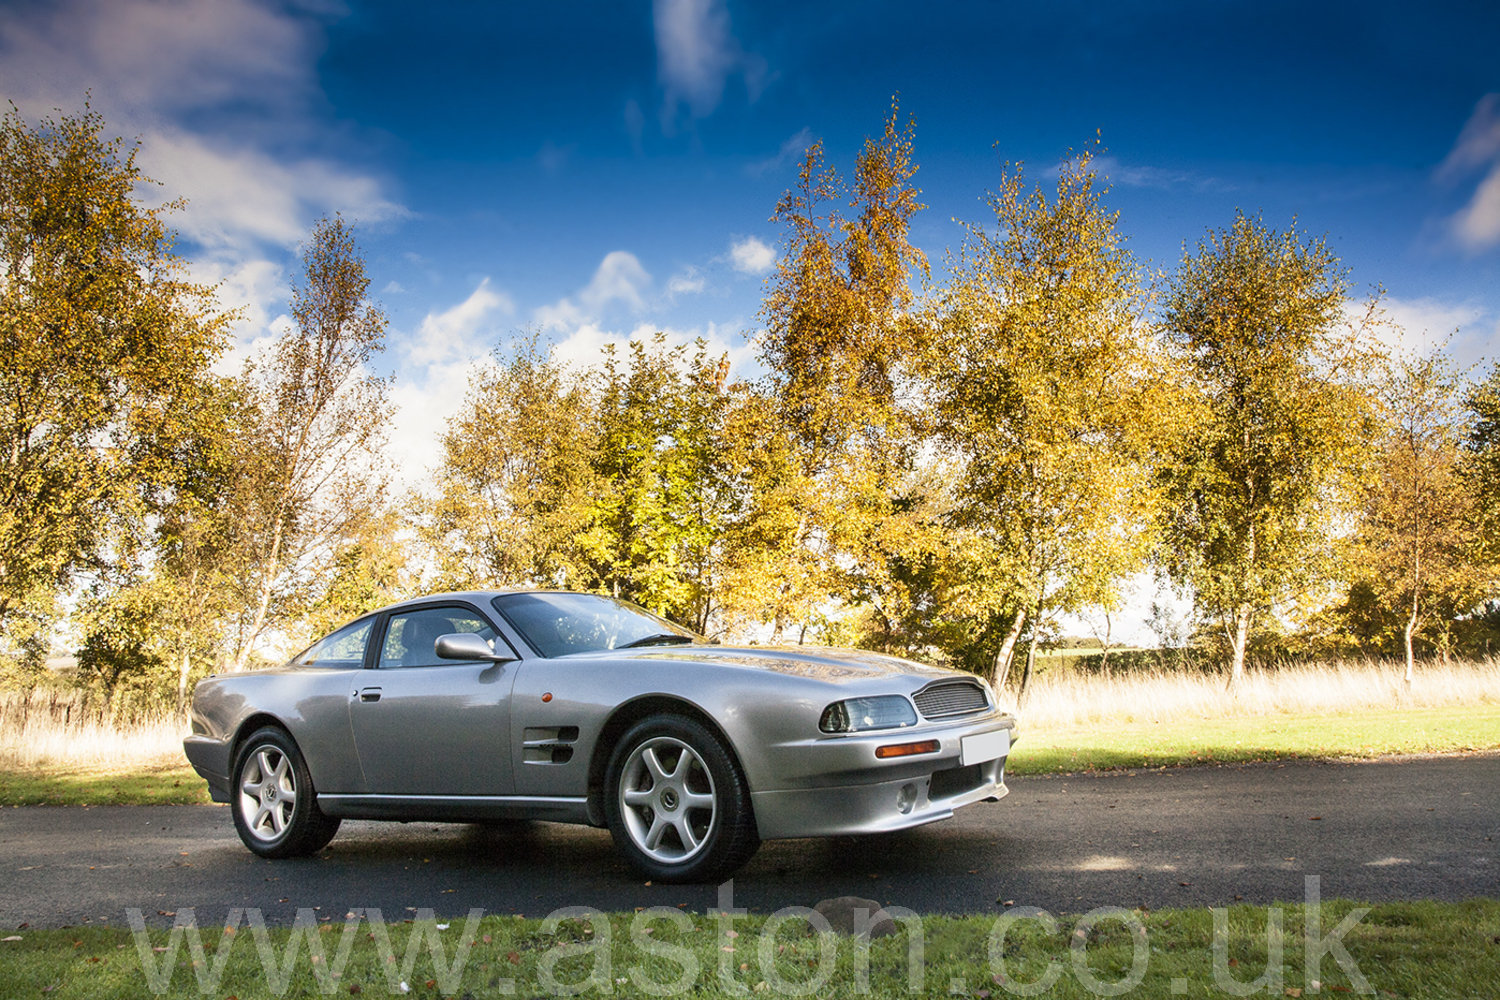 1997 Aston Martin V8 Coupe For Sale (picture 6 of 6)